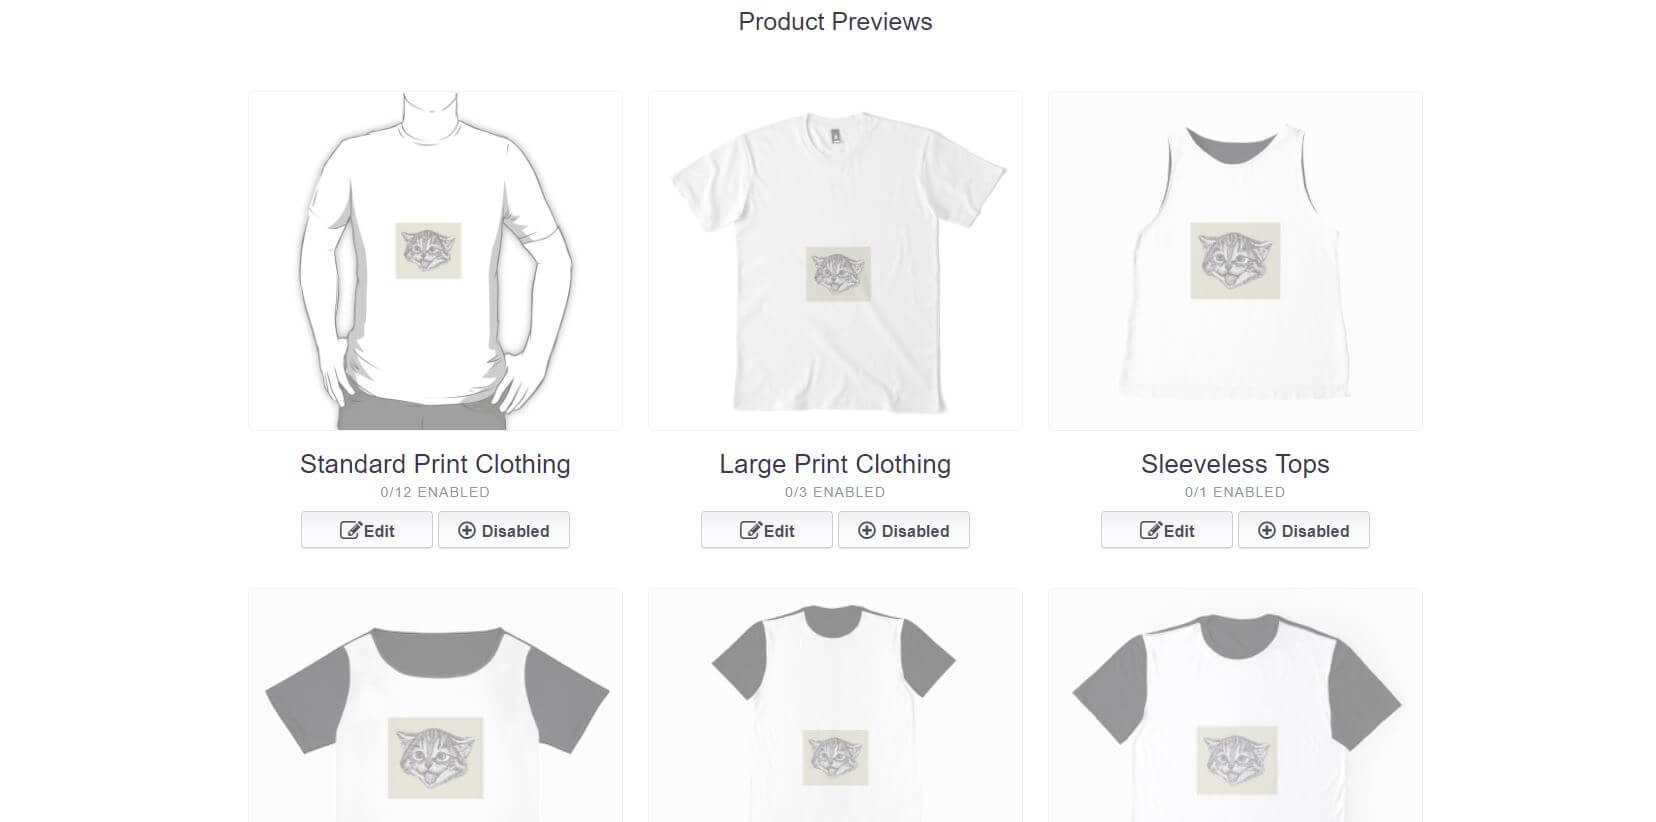 Redbubble Enabling Products